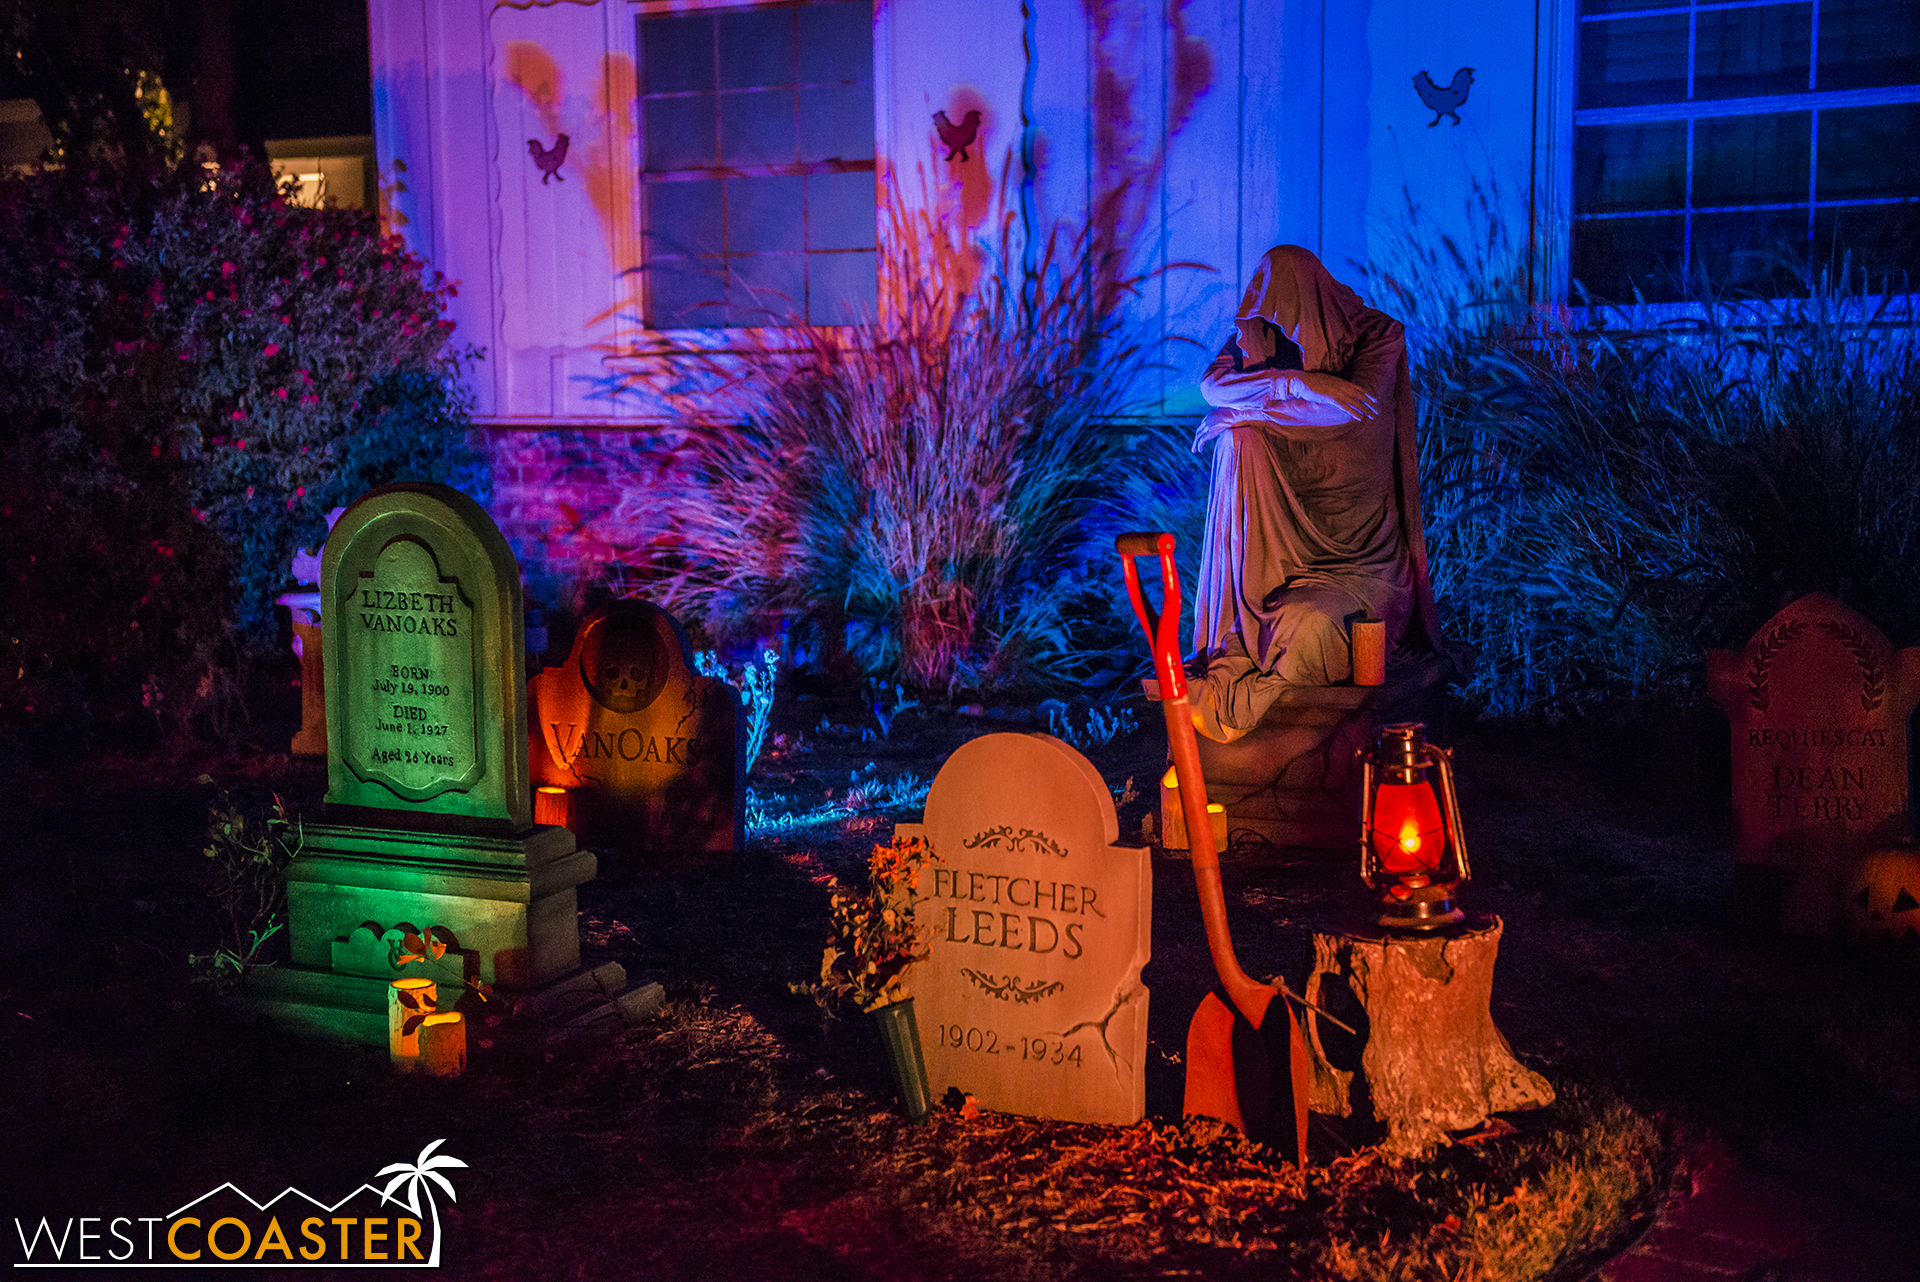 VanOaks Cemetery is a yard display, not a haunt, but the detail and craftsmanship are superb, and literally everything here is custom and personally fabricated, not store-bought!